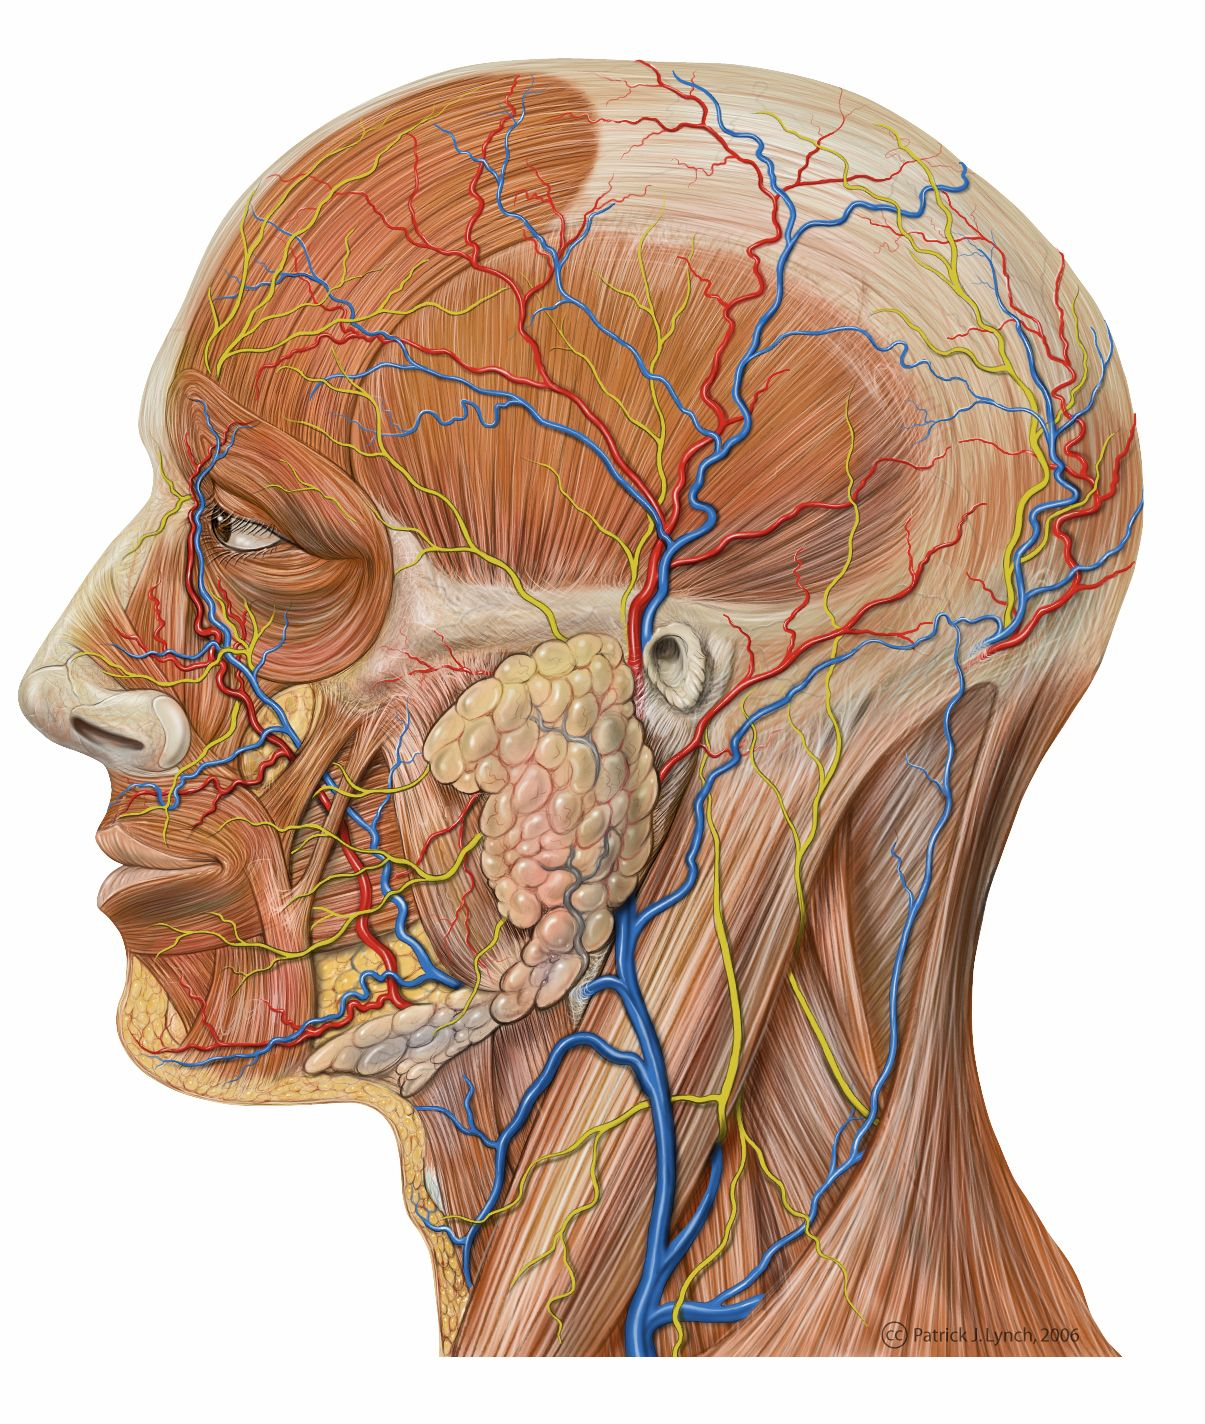 neck dissection anatomy anterior - Google Search | Anatomi ...